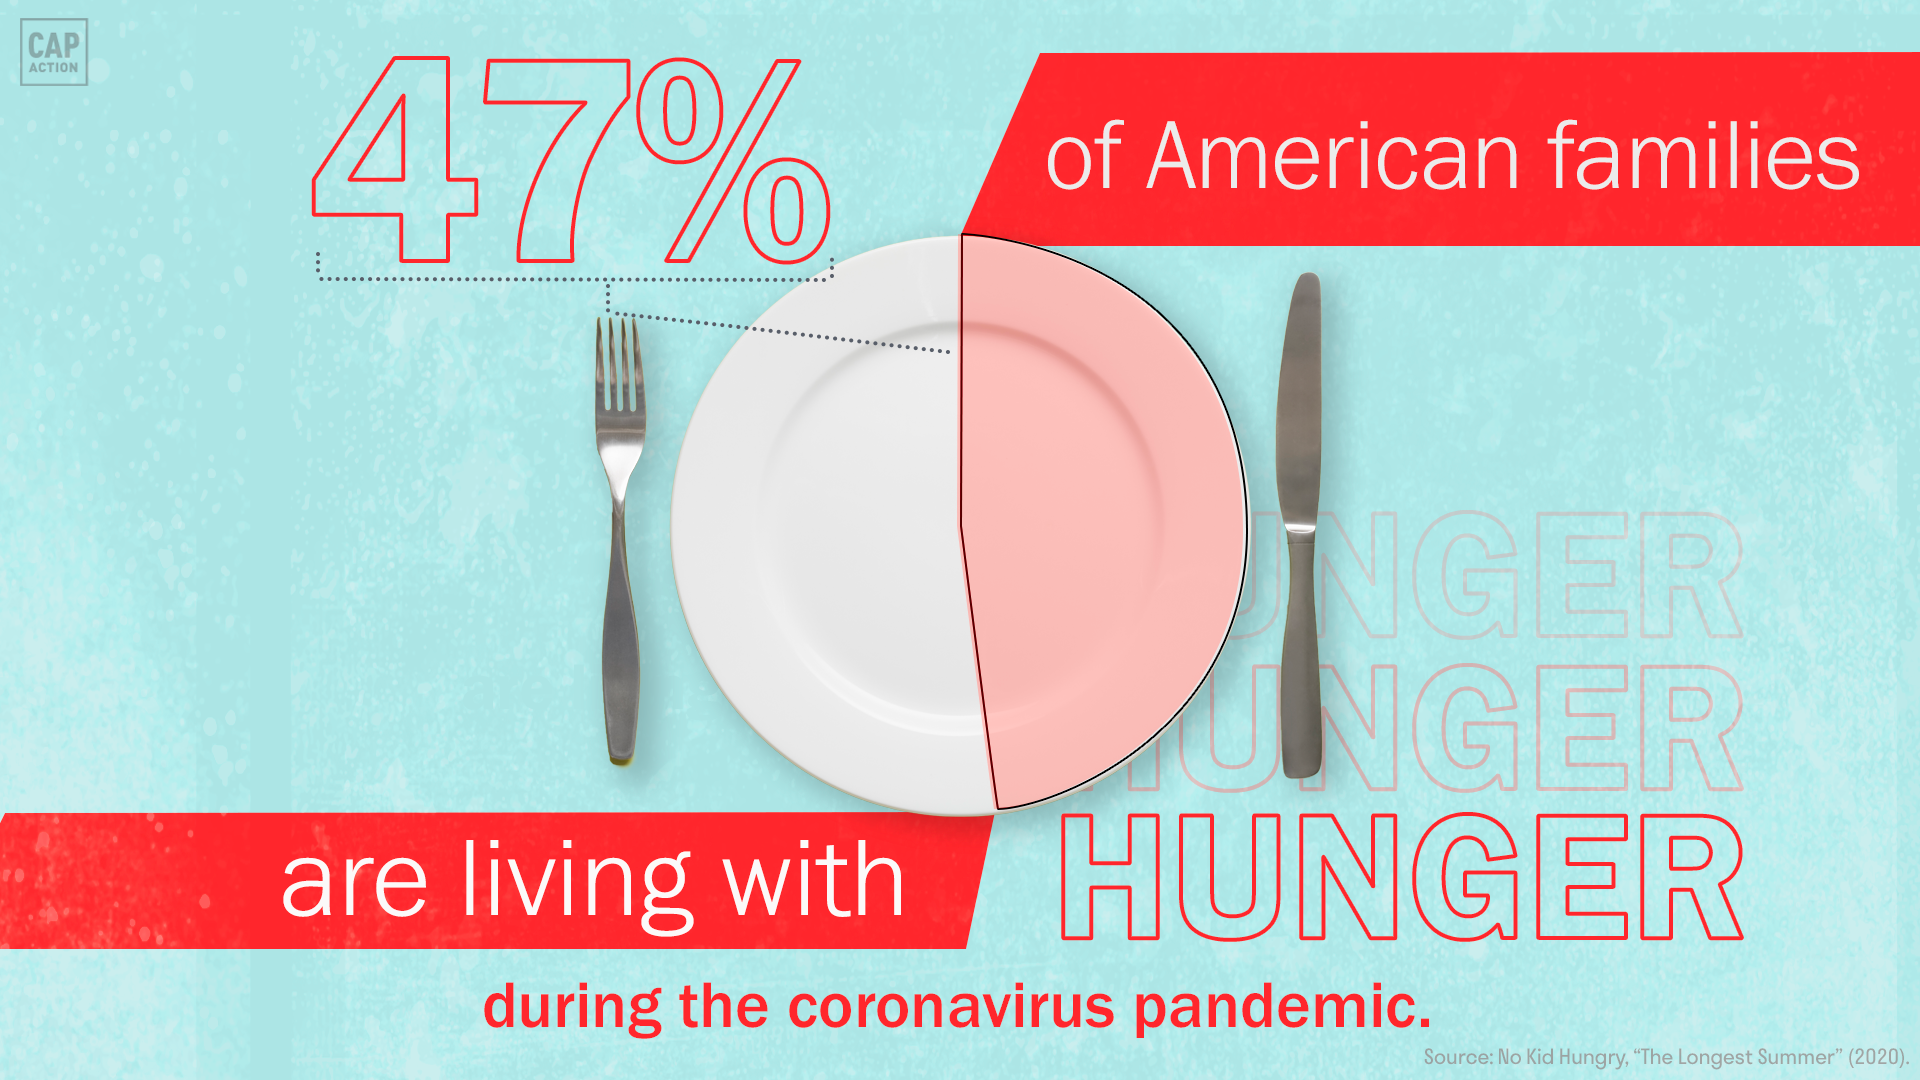 47% of American families are living with hunger during the coronavirus pandemic.